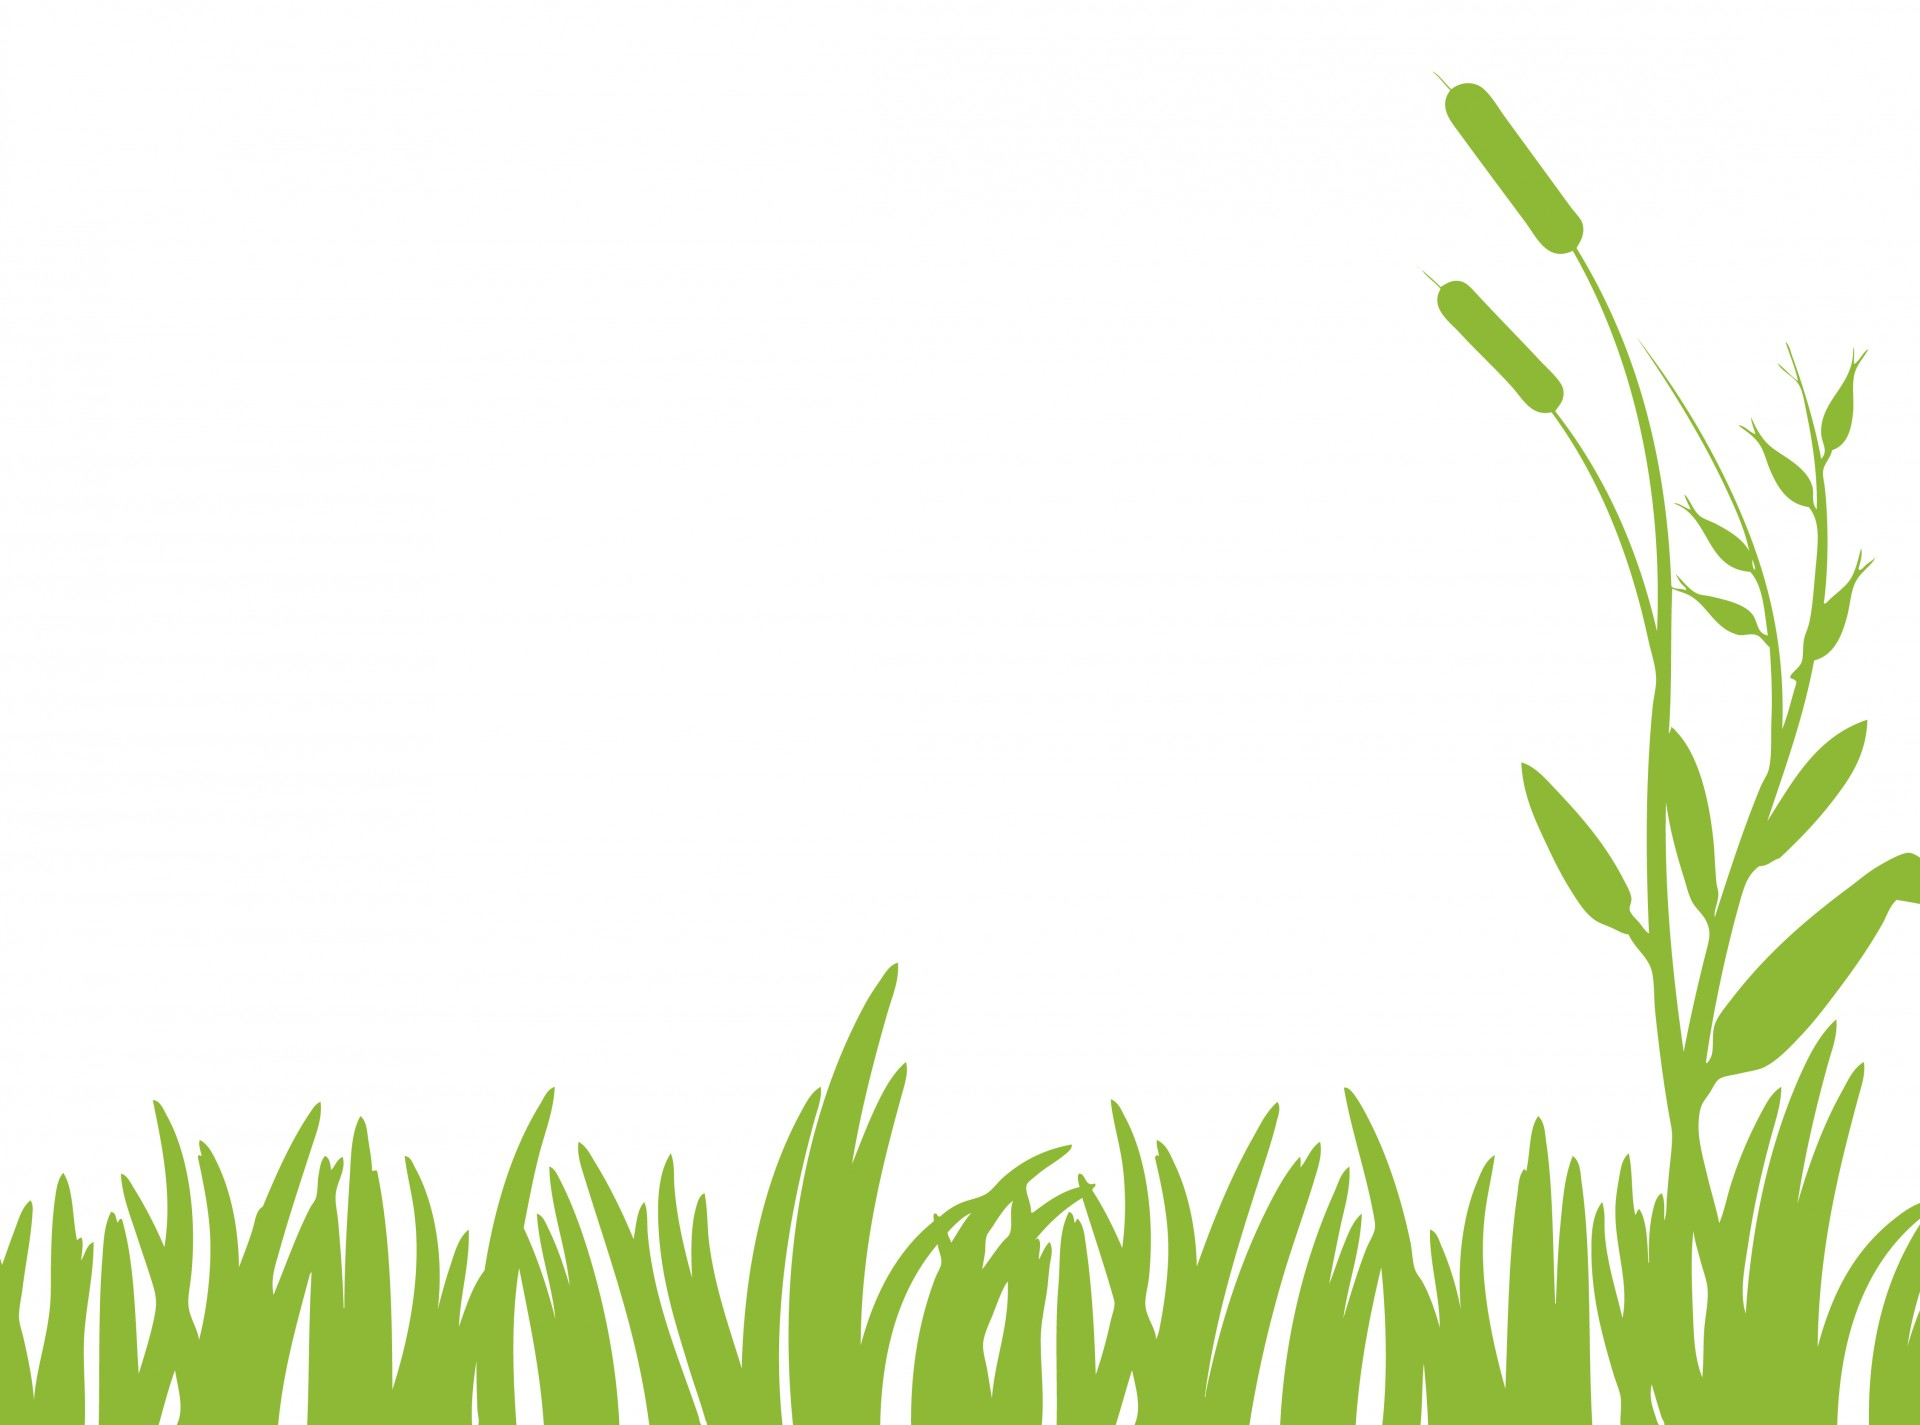 Grass clip art free clipart images 5